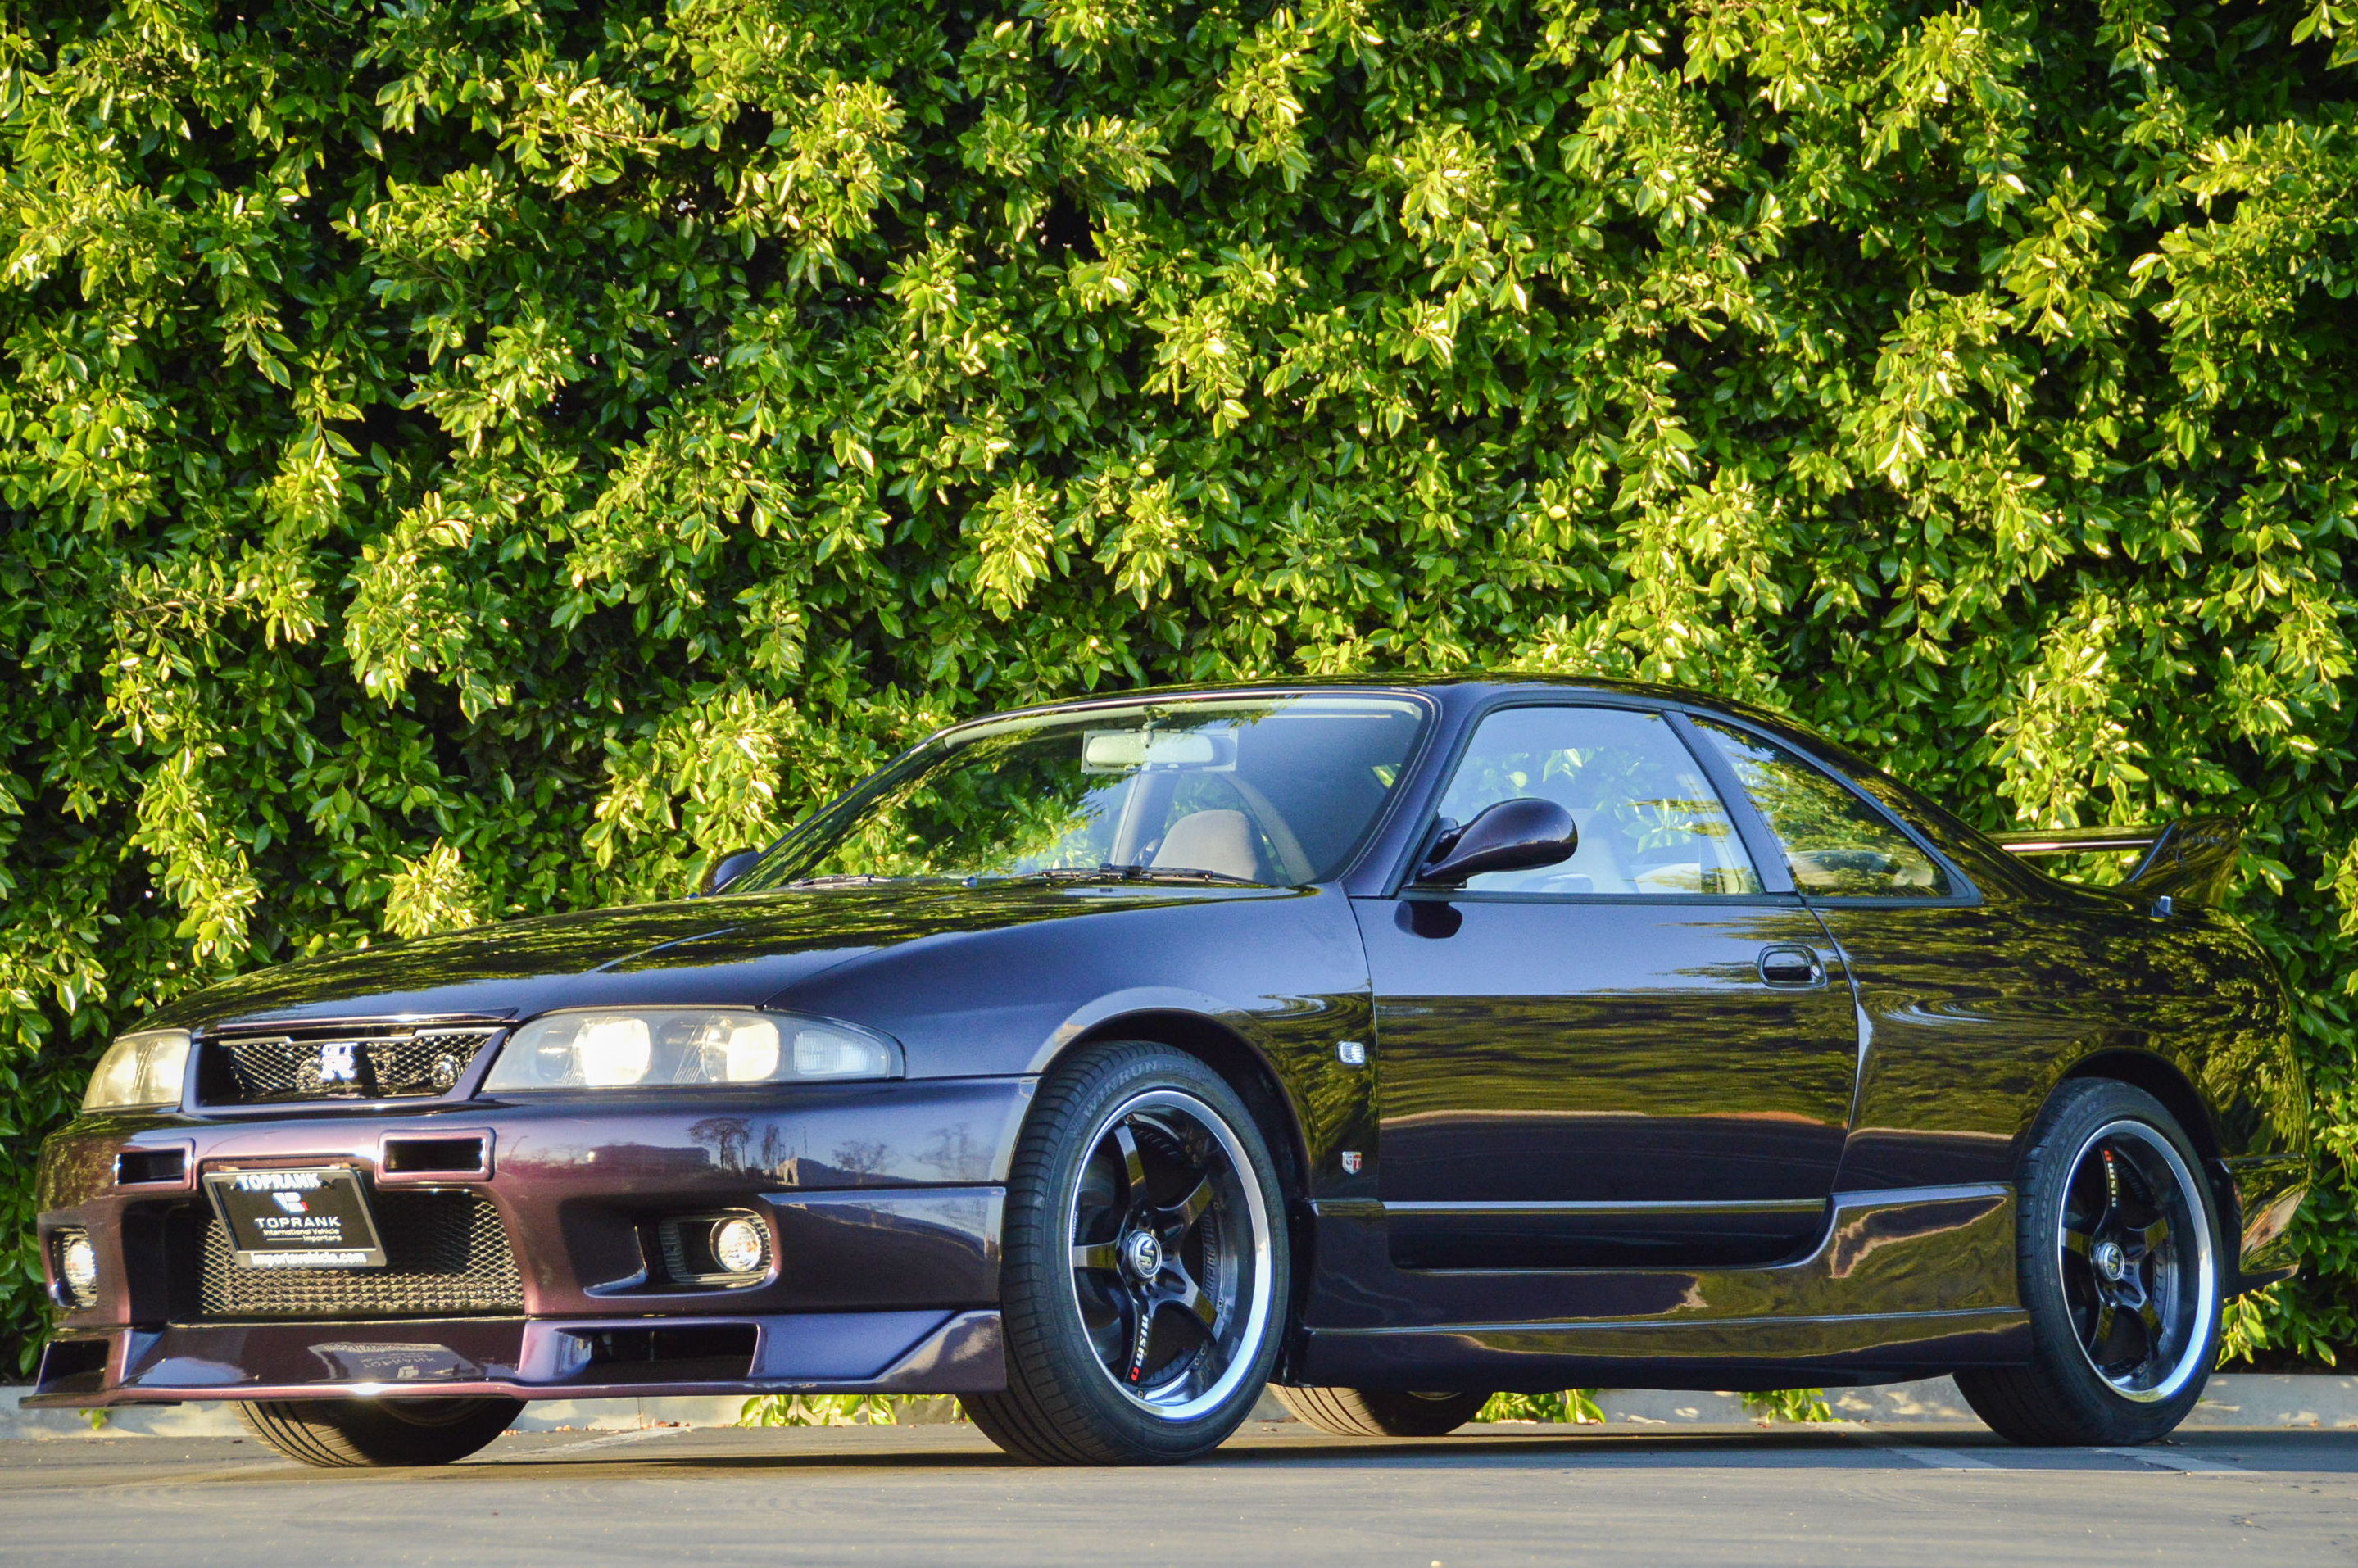 R33 GTR Skyline for sale at Toprank Importers in the USA